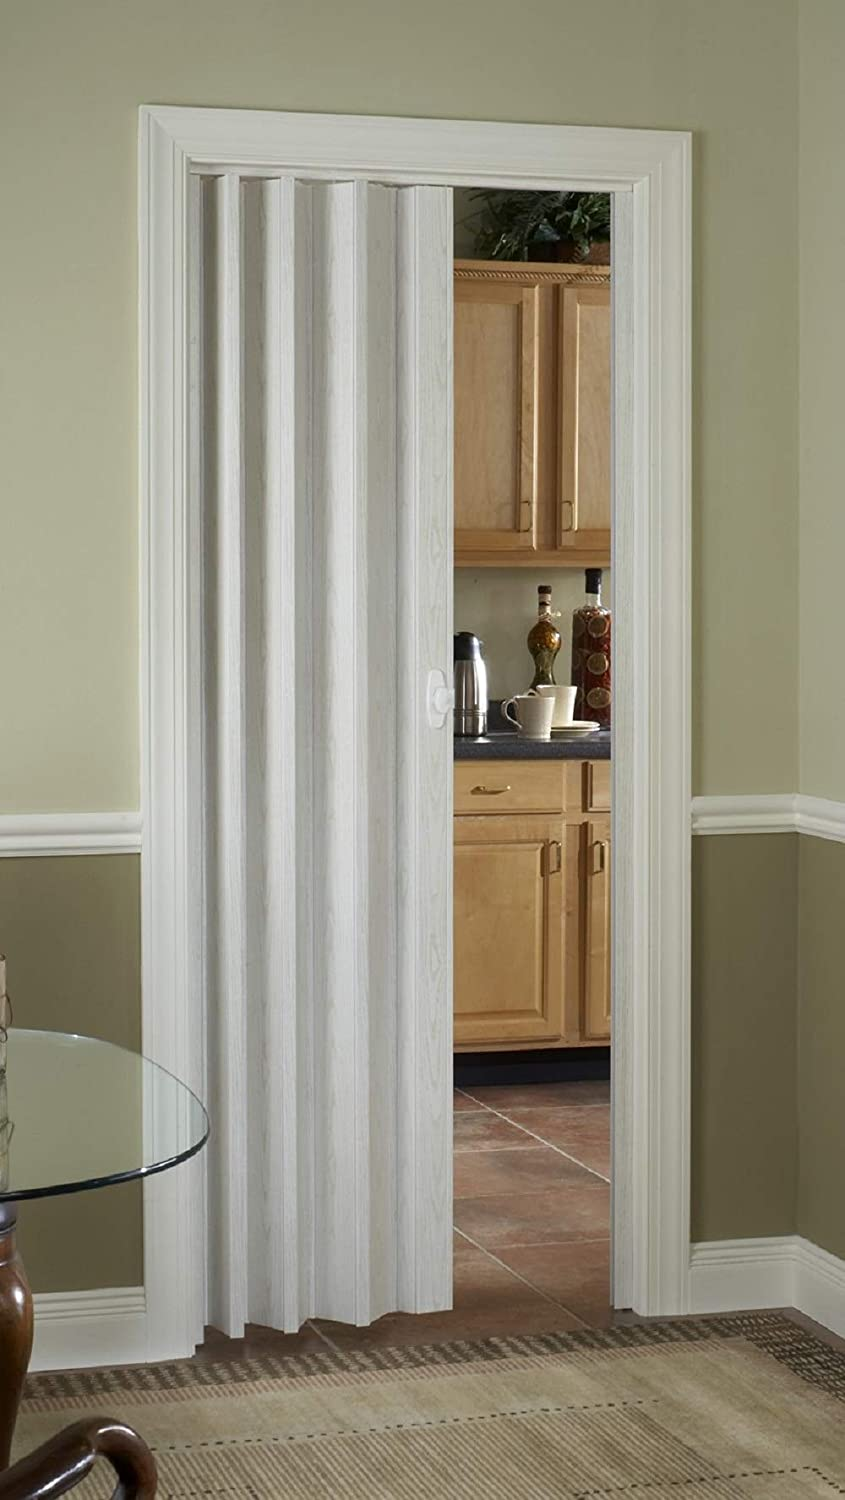 LTL Home Products HSROYAL3280WA Royale Interior Folding Accordion Door 36 x 80 Inches White Ash